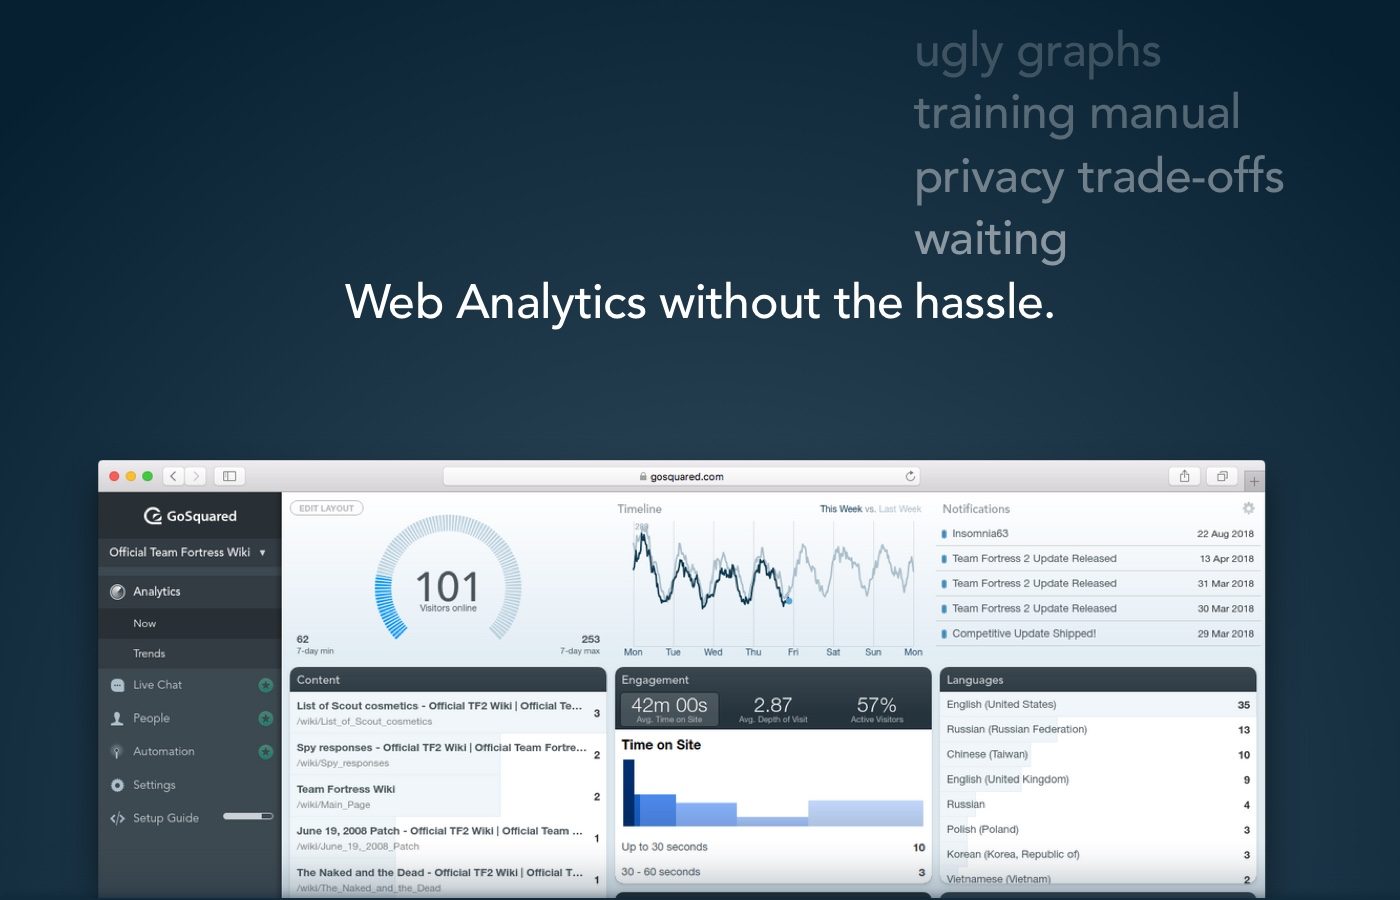 The new Web Analytics - web analytics without the hassle